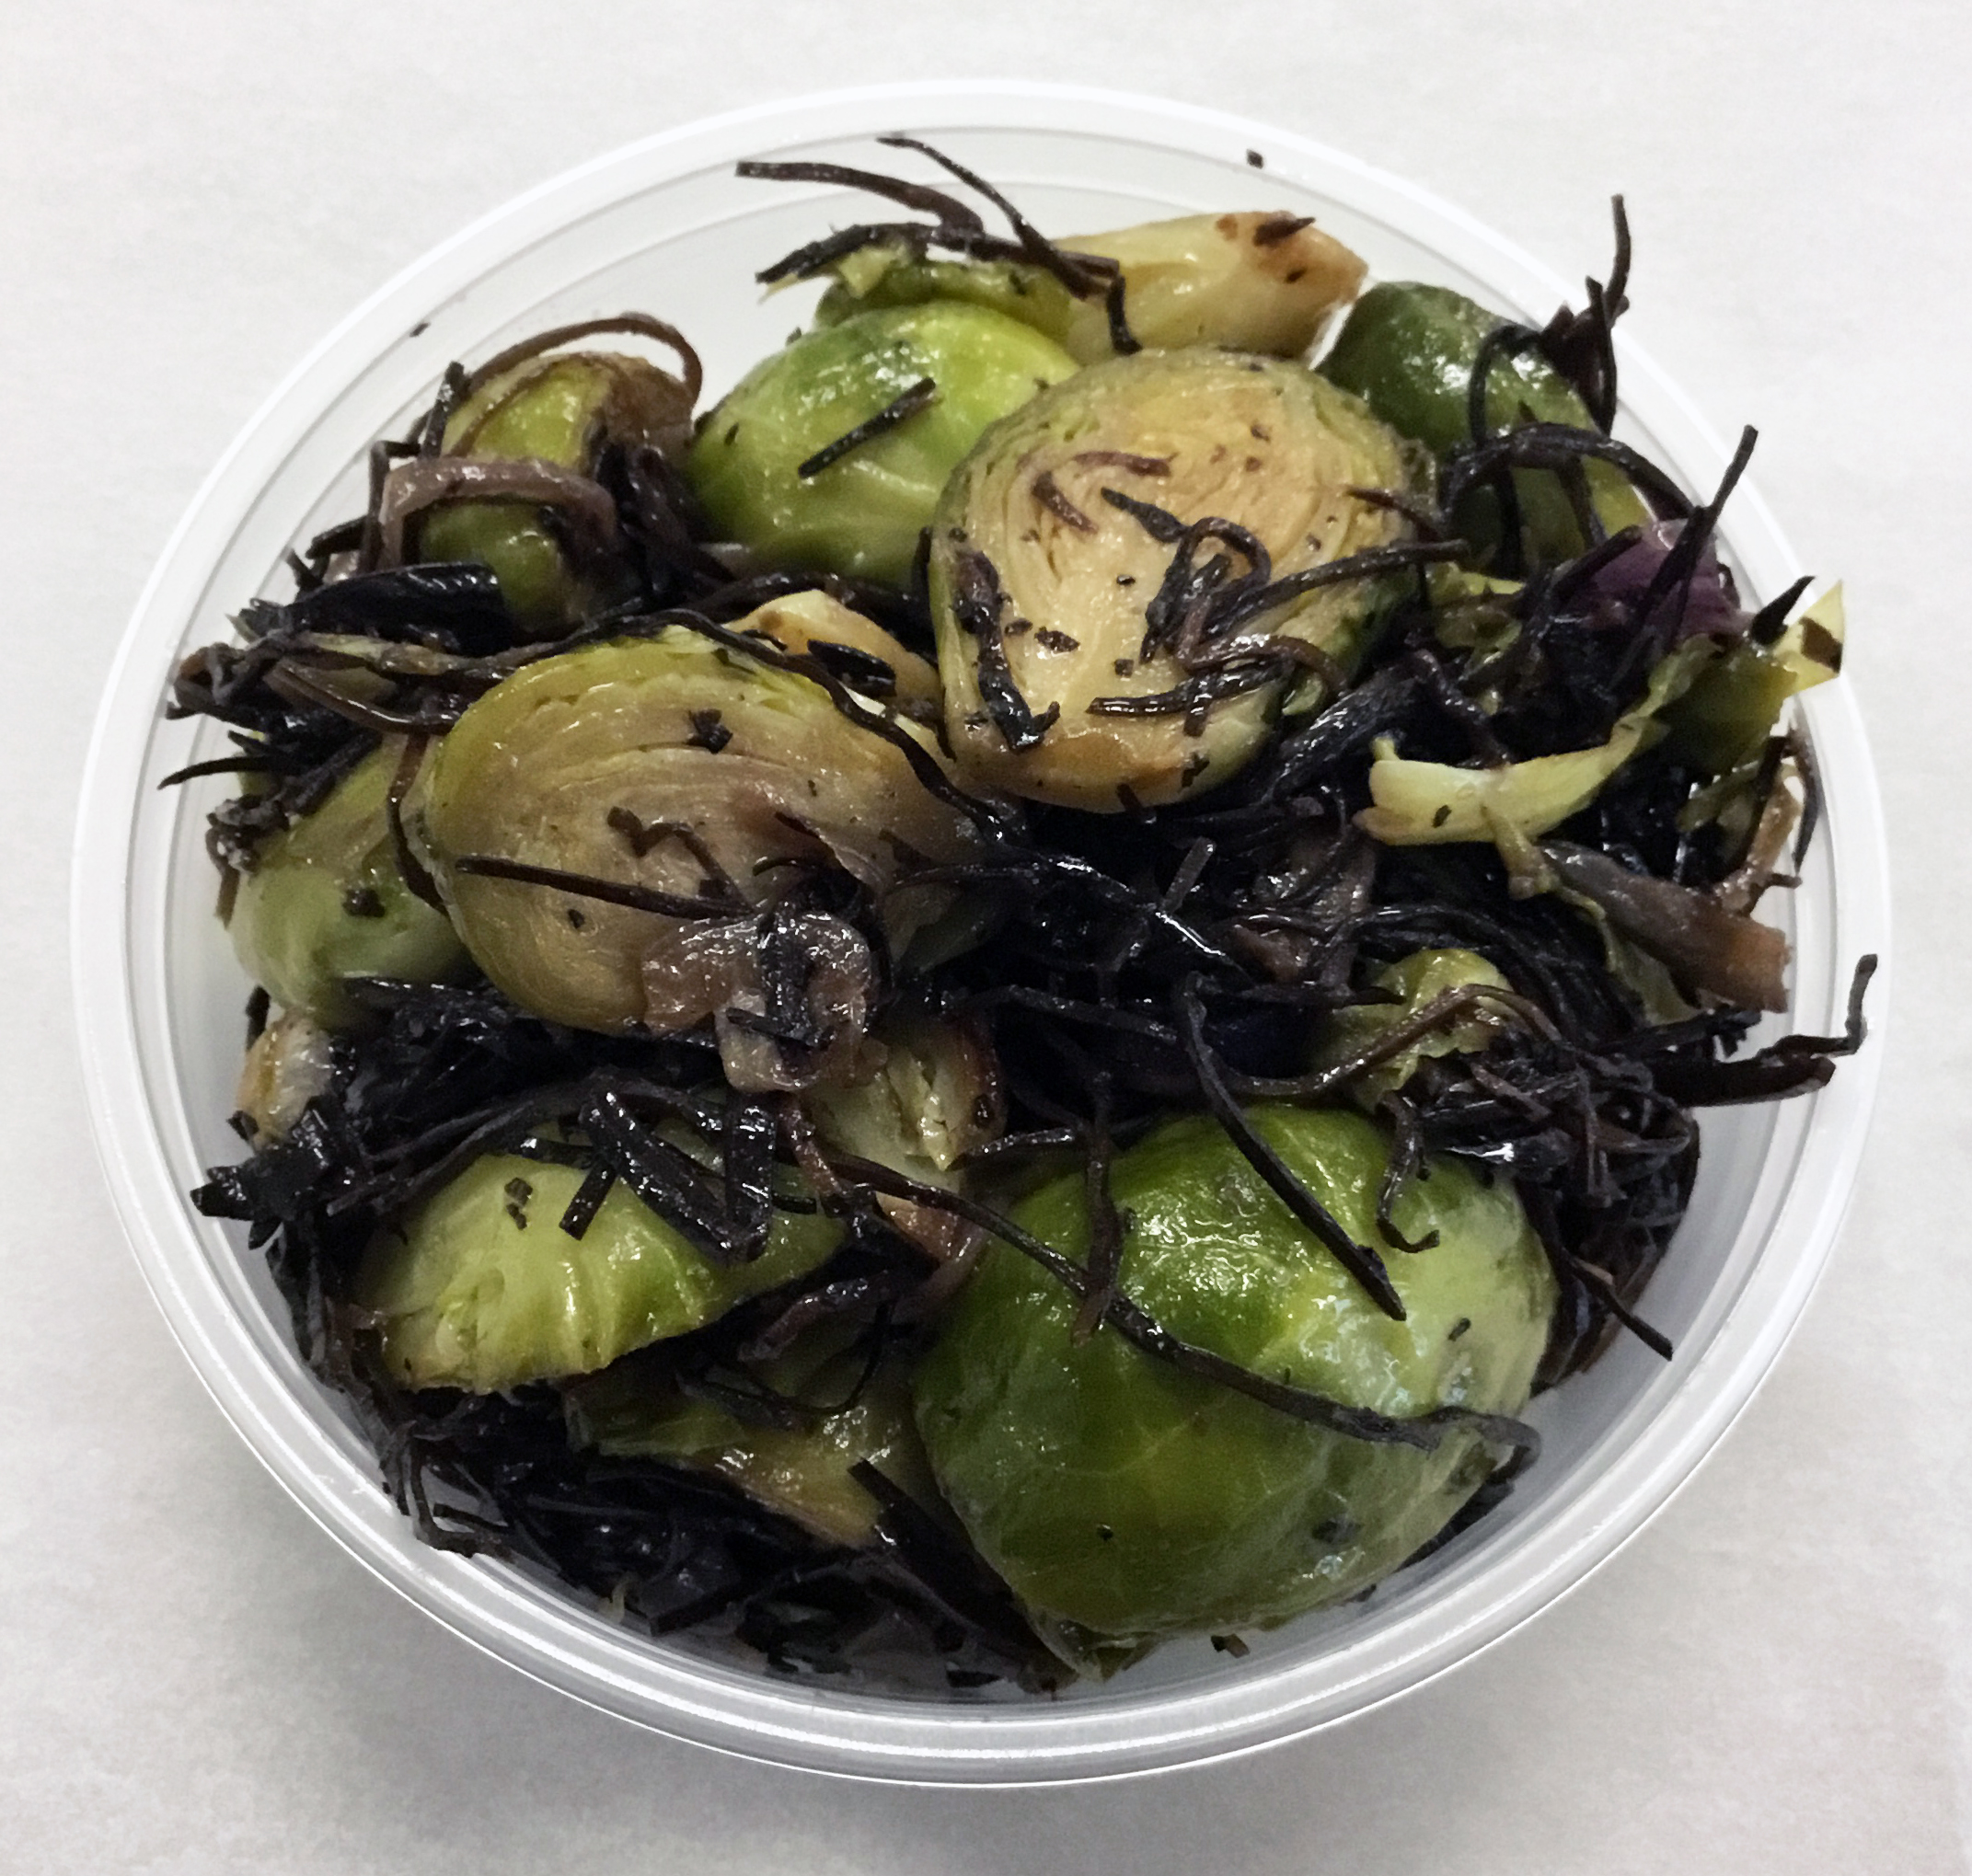 Water sauteed brussels sprouts with arame (seaweed).